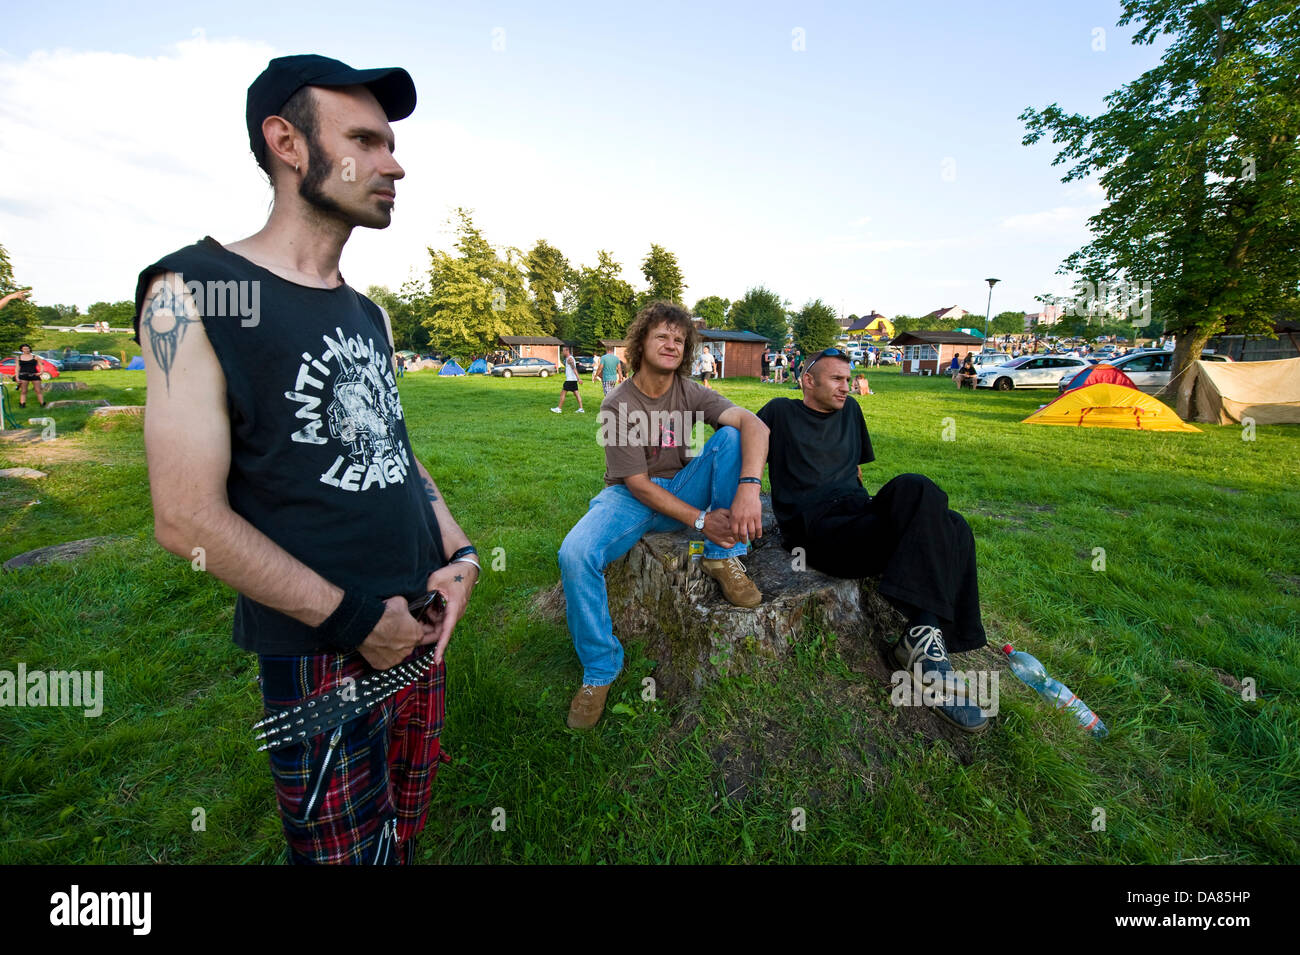 Goniadz, Poland - July 7th, 2013 - A two-day event called The Swamp Rock Fest (Rock na bagnie) arranged in the middle of wetlands in North-Eastern Poland attracted tens of punk rock groups and hundreds of their devotees. This working-class subculture, orignating from the 1970s, is gaining ground in certain countries due to high unemployment figures. Stock Photo